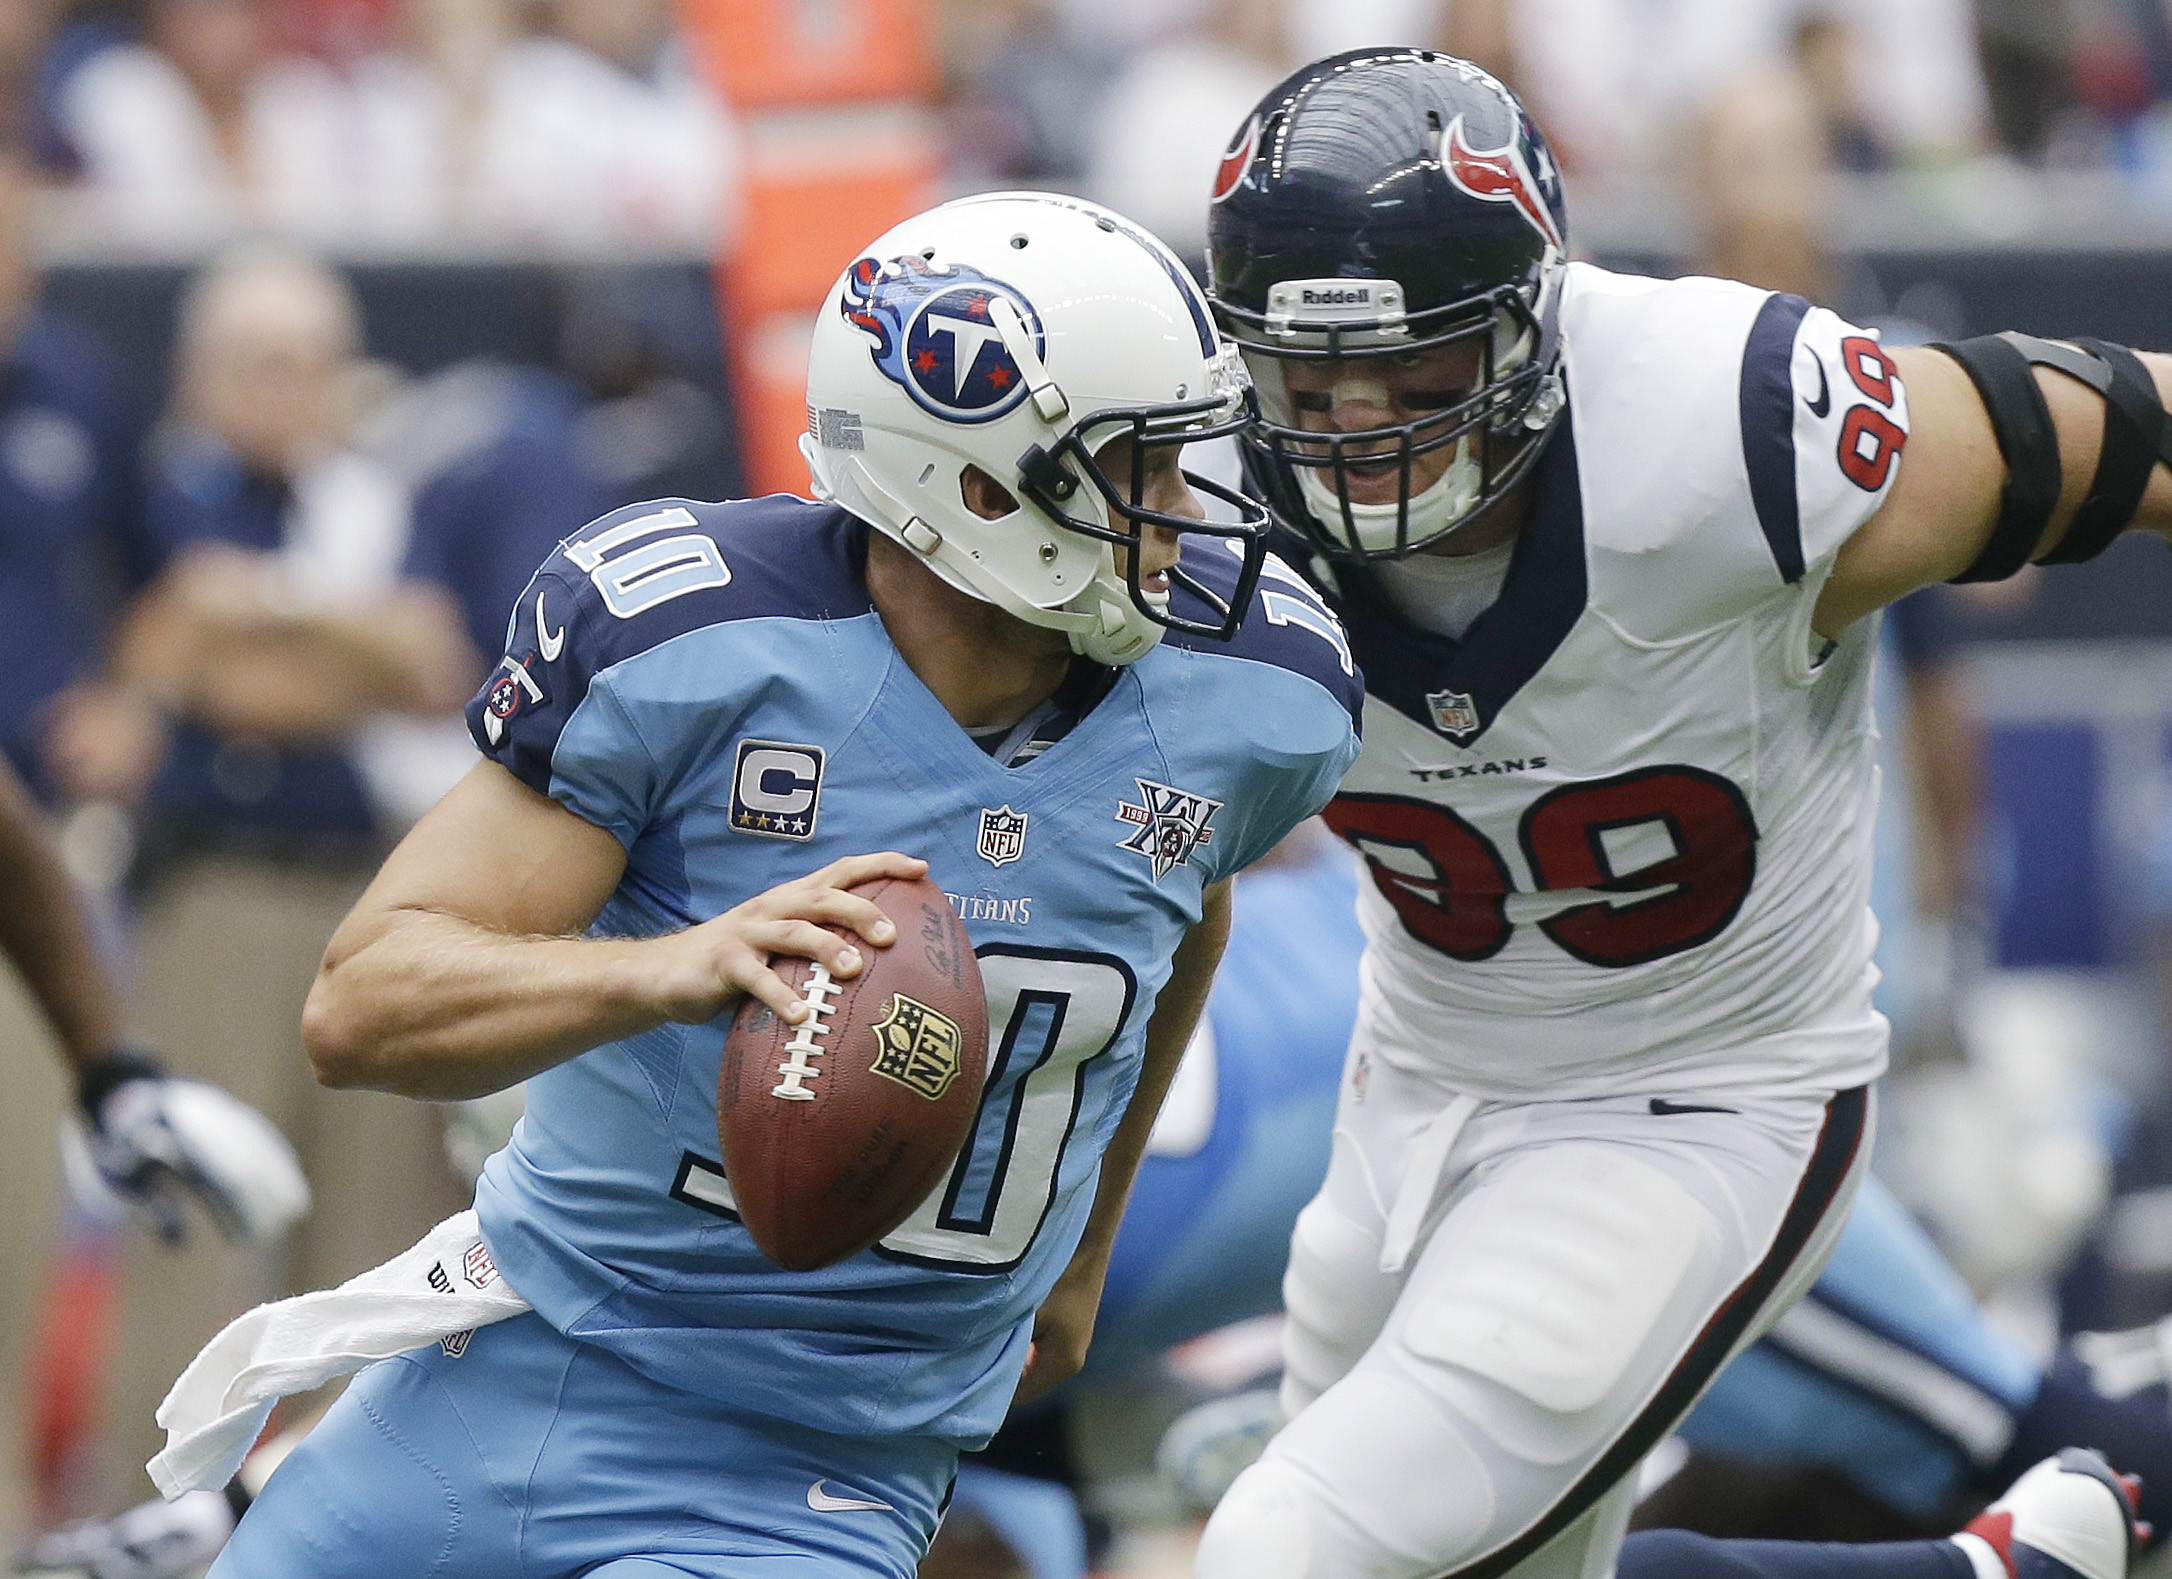 Res: 2172x1579, TENNESSEE TITANS nfl football houston texans k wallpaper |  |  158138 | WallpaperUP